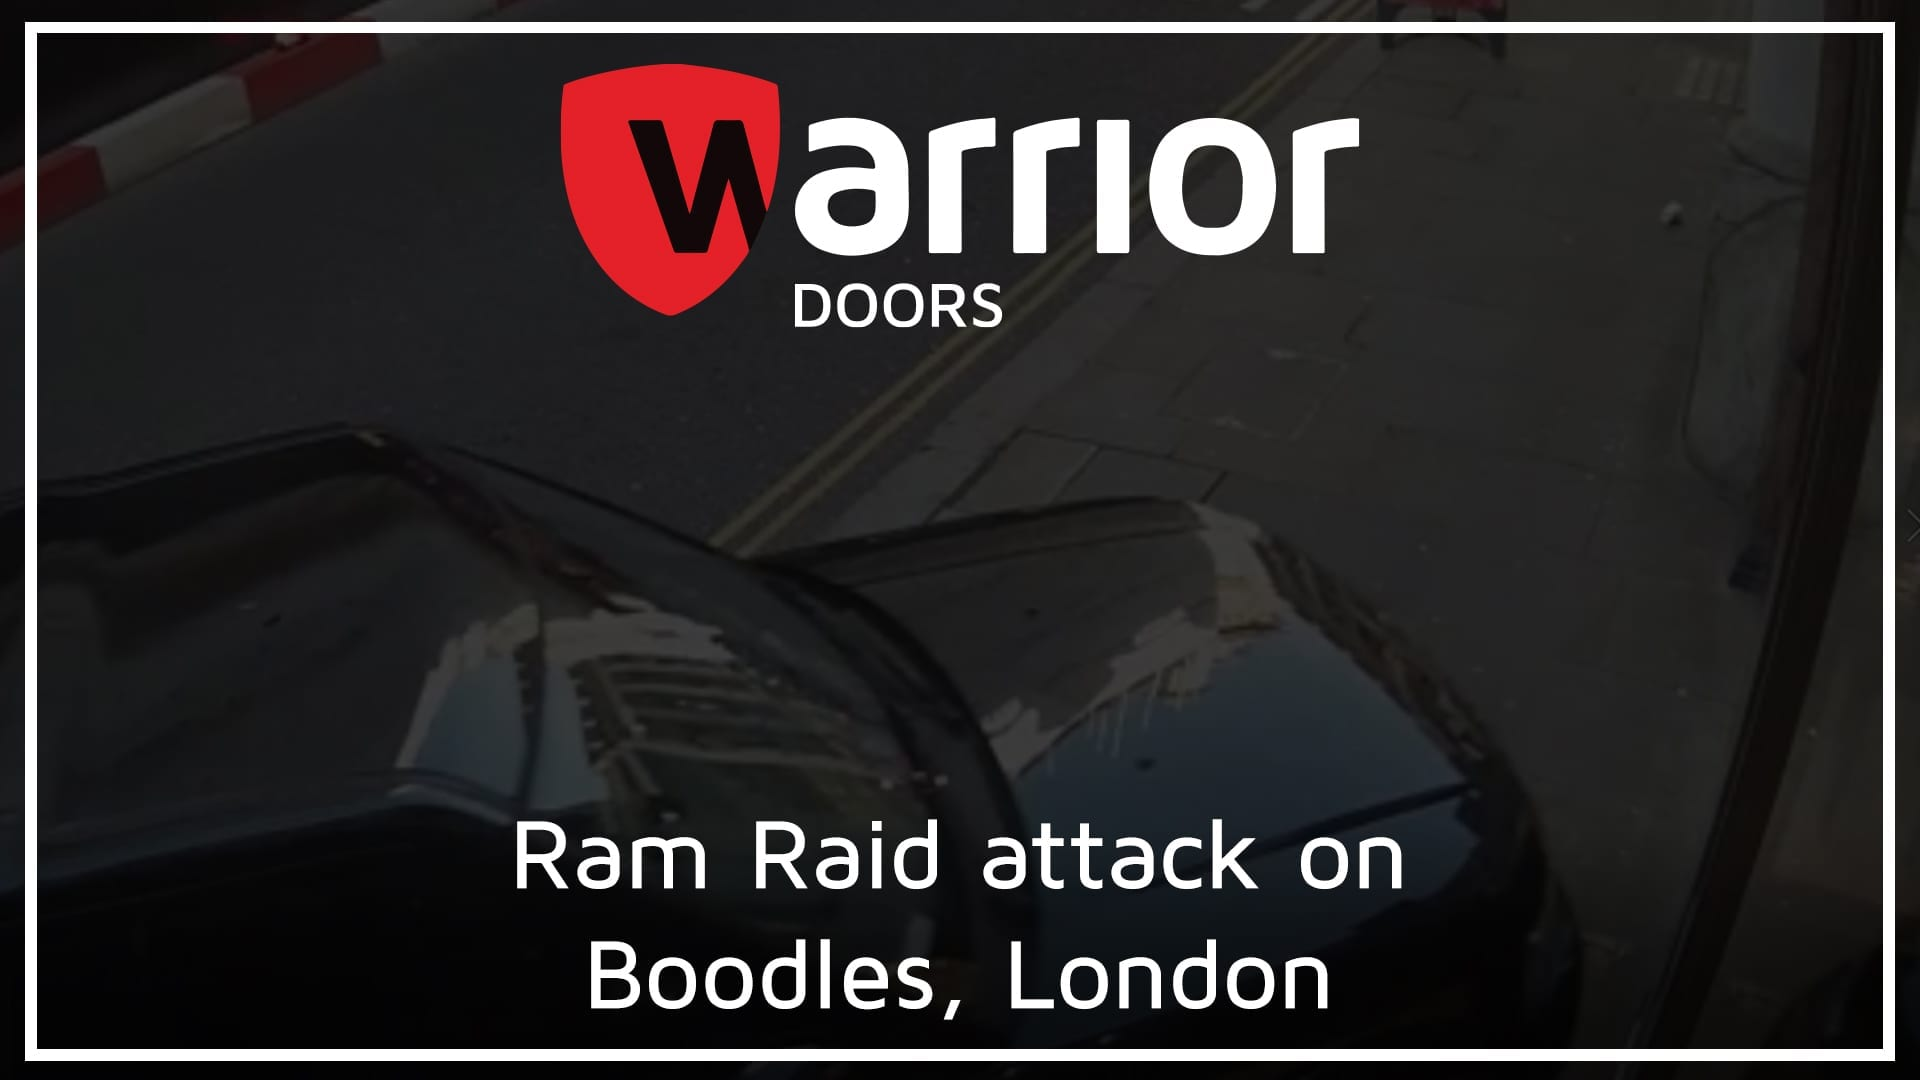 """Range Rover outside jewellery shop with Warrior Doors Logo and text reading """"Ram Raid attack on Boodles, London""""."""